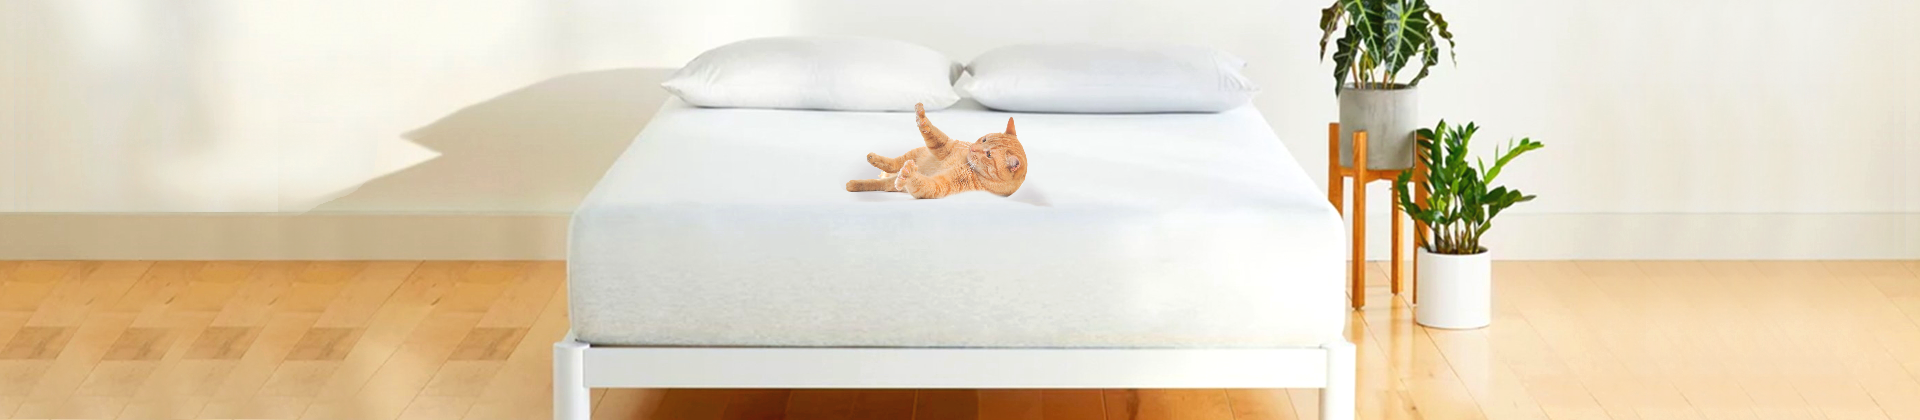 Best Cat-Proof Air Mattresses Reviewed in Detail